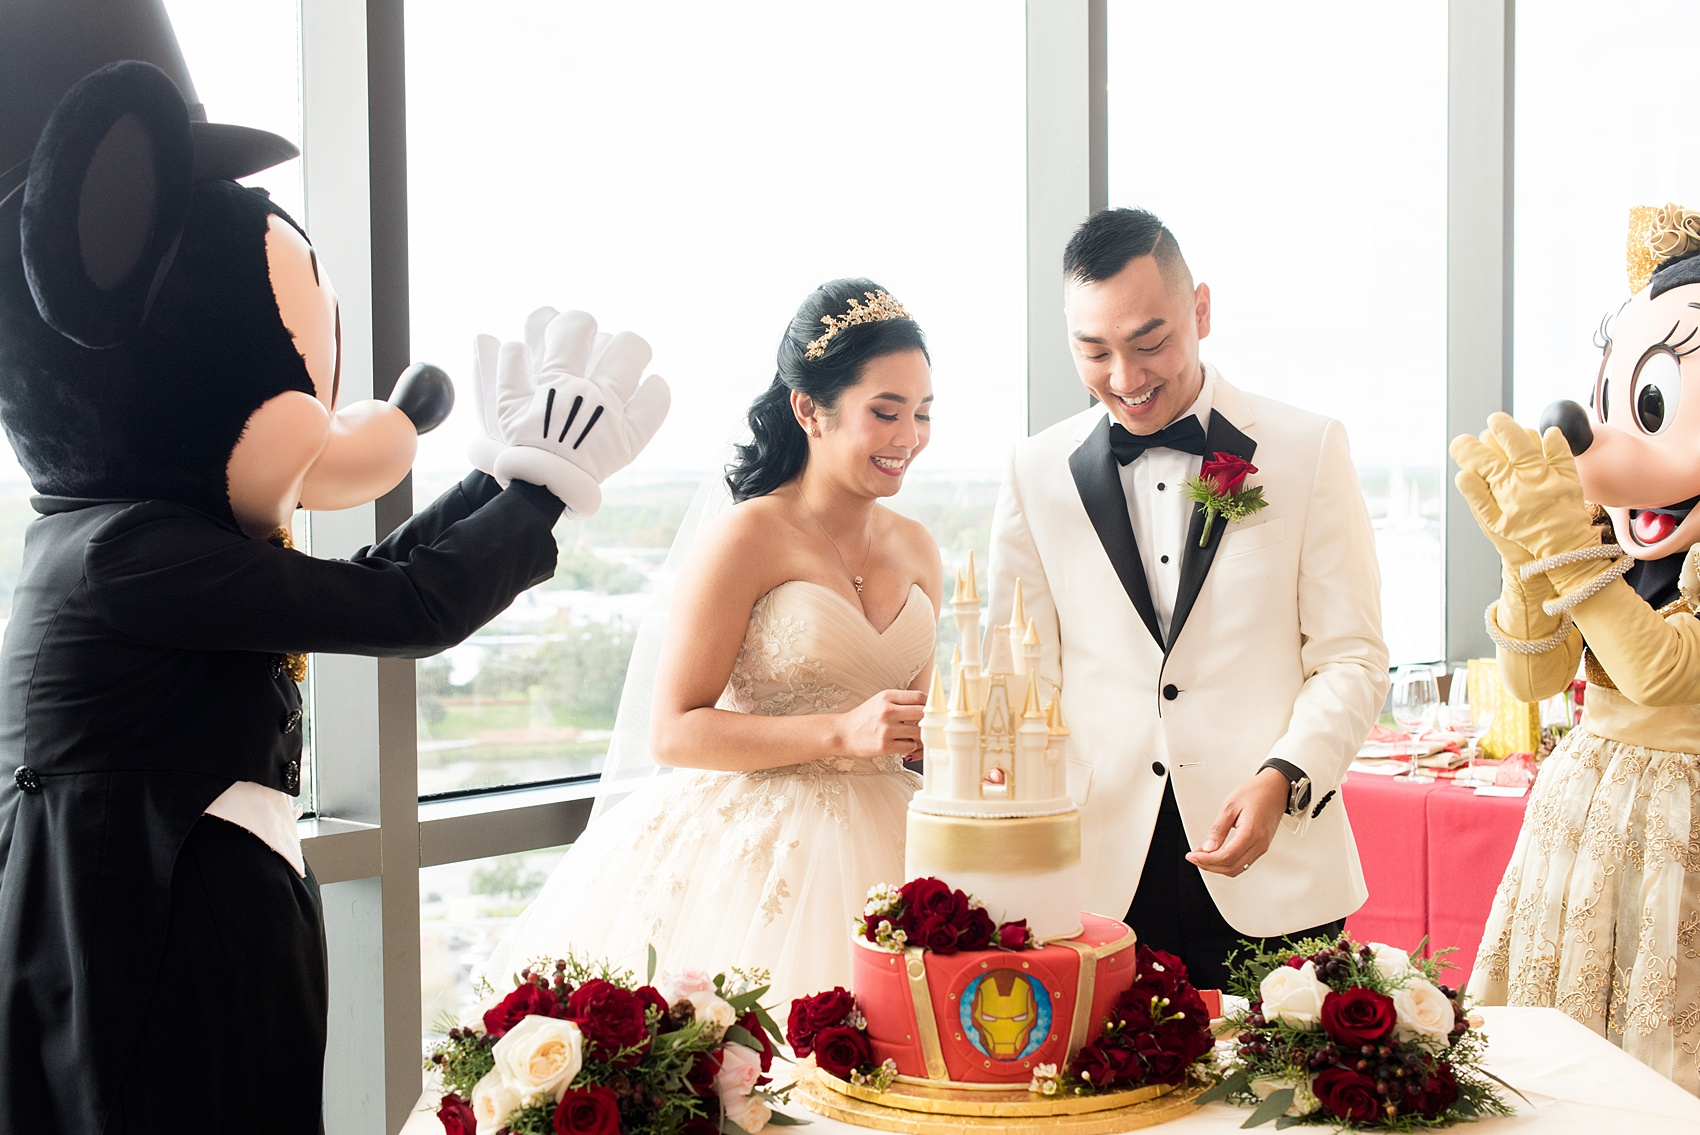 Photographs of a Walt Disney World wedding by Mikkel Paige Photography. The bride and groom had cake cutting help from Mickey Mouse and Minnie Mouse in formal attire! Their reception venue at The Contemporary Resort's California Grill was great for fun, awesome photos with them. It overlooked the Magic Kingdom Park and Cinderella Castle! Their small, dream day included red rose details and a Beauty and the Beast theme. #disneywedding #DisneyWorldWedding #BeautyandtheBeast #MickeyandMinnie